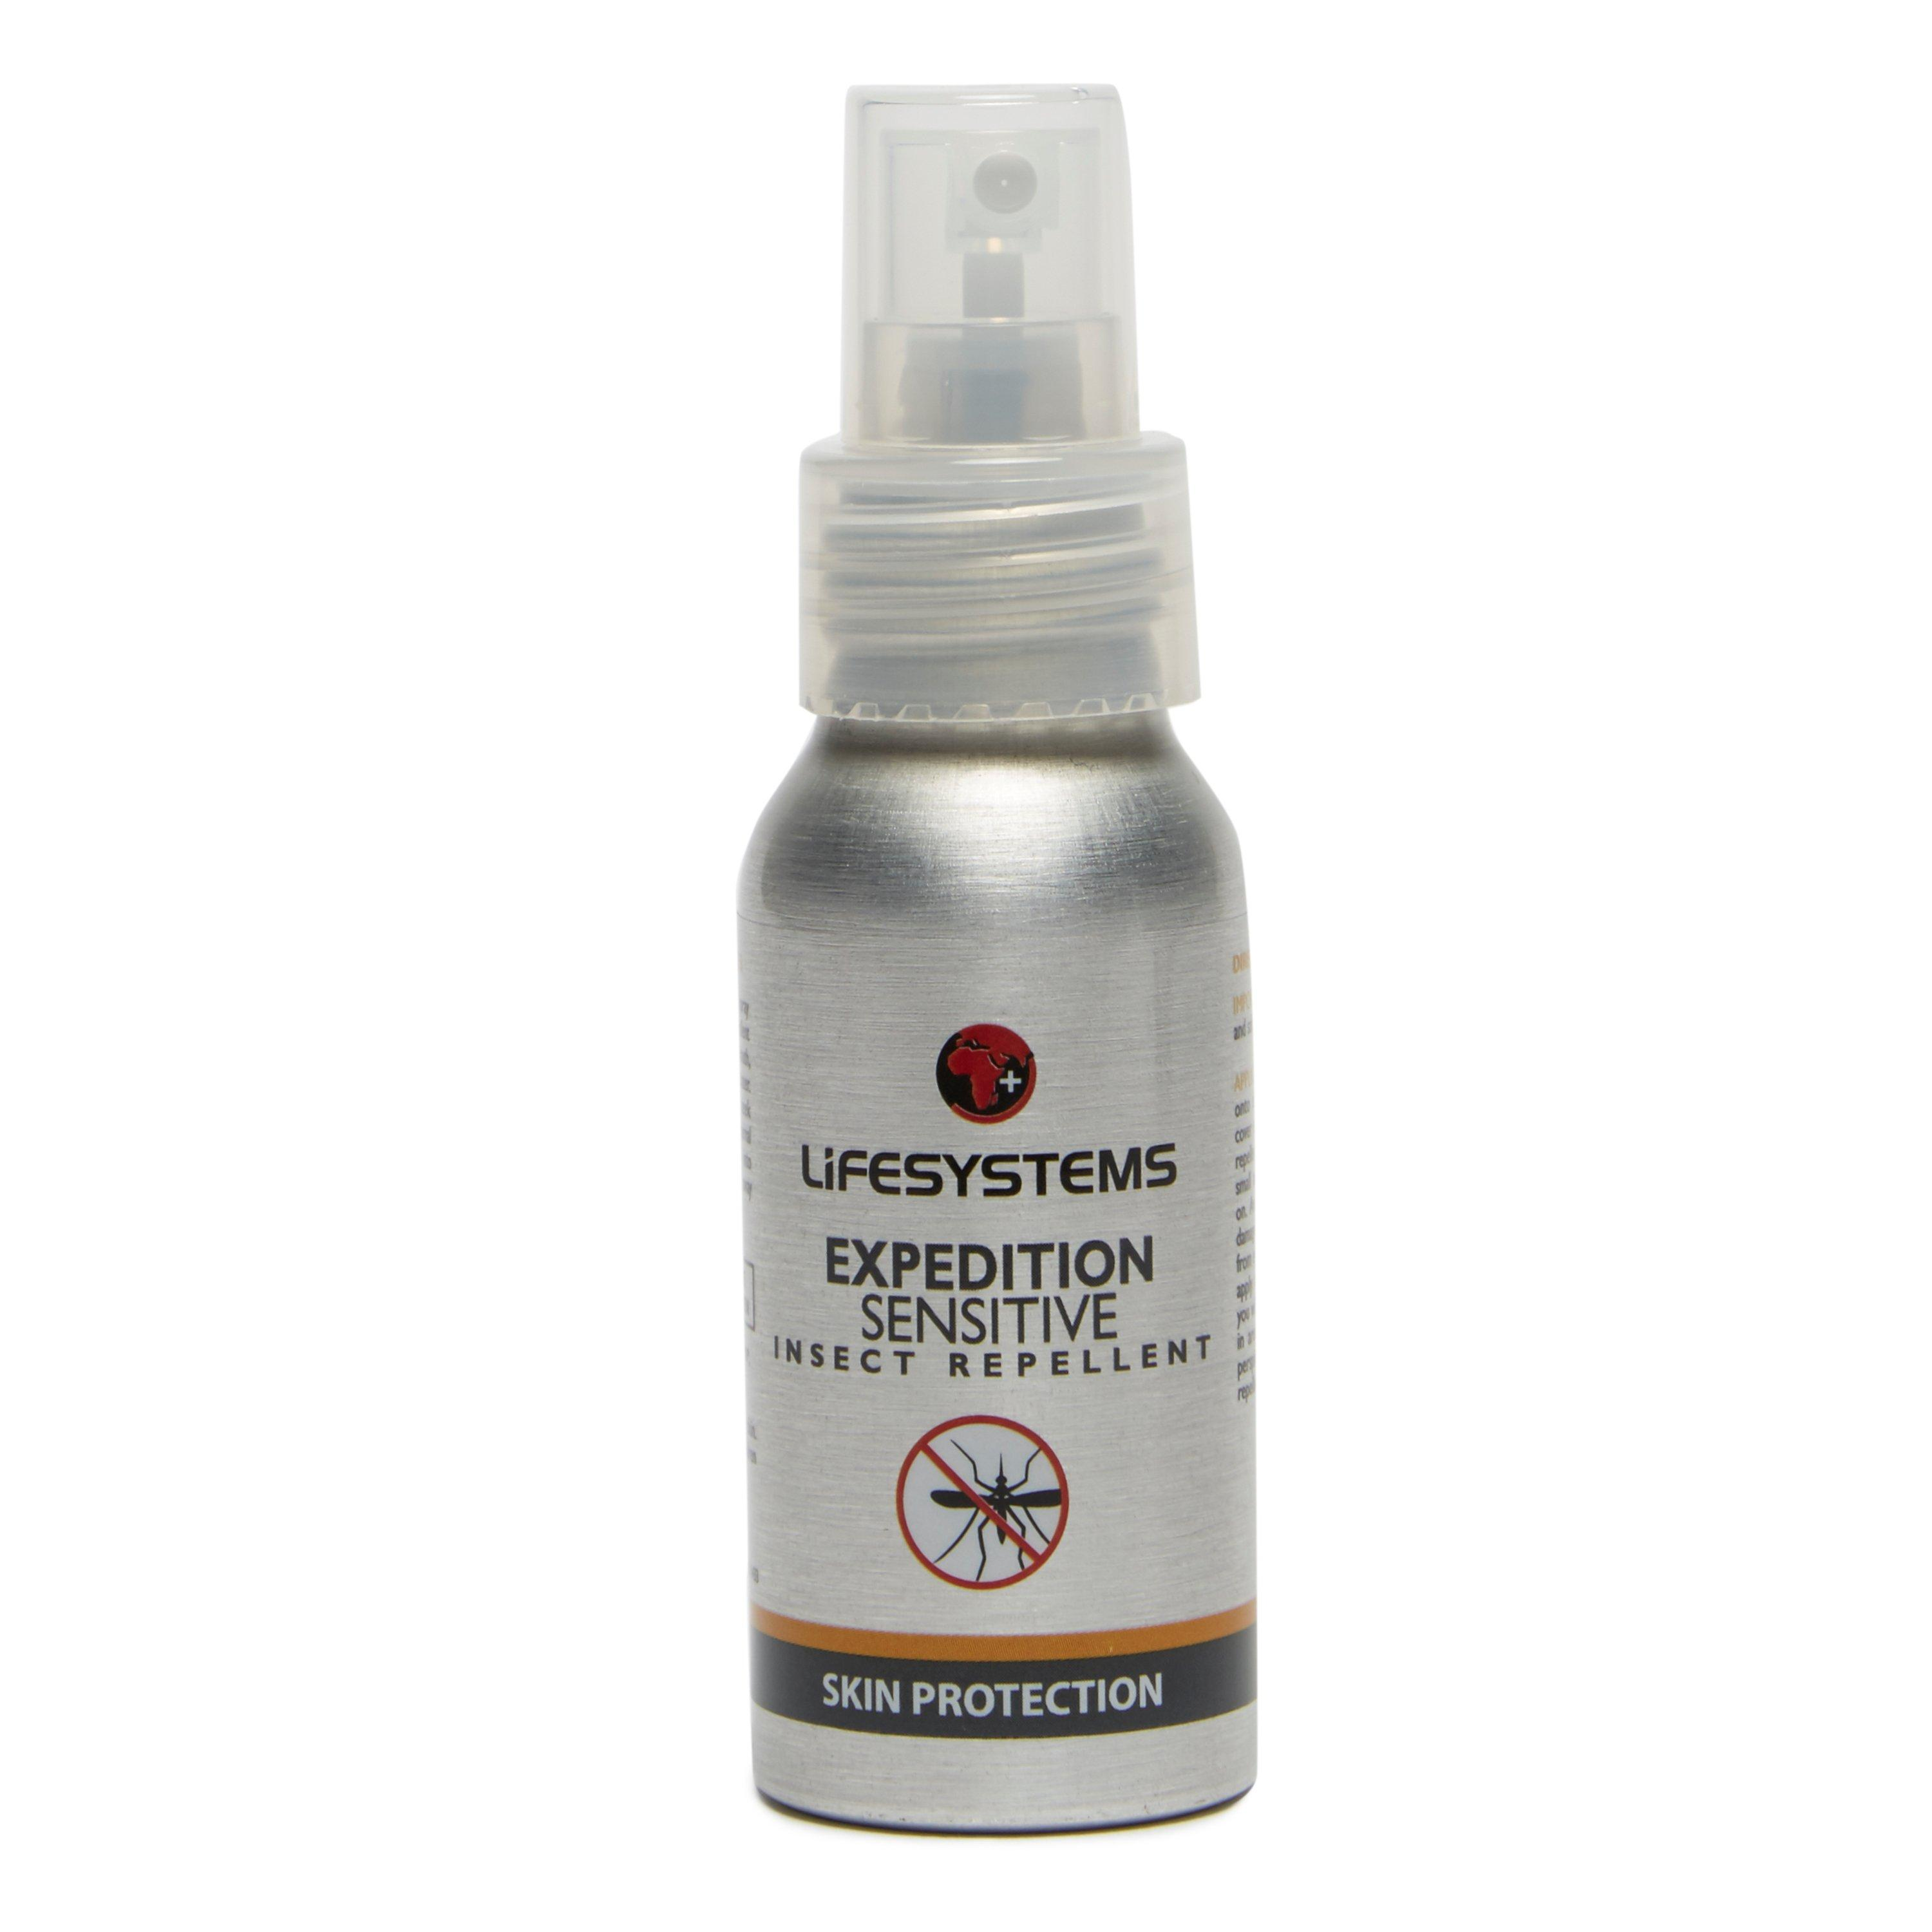 Lifesystems Lifesystems Expedition Sensitive Insect Repellent Spray 50ml - N/A, N/A